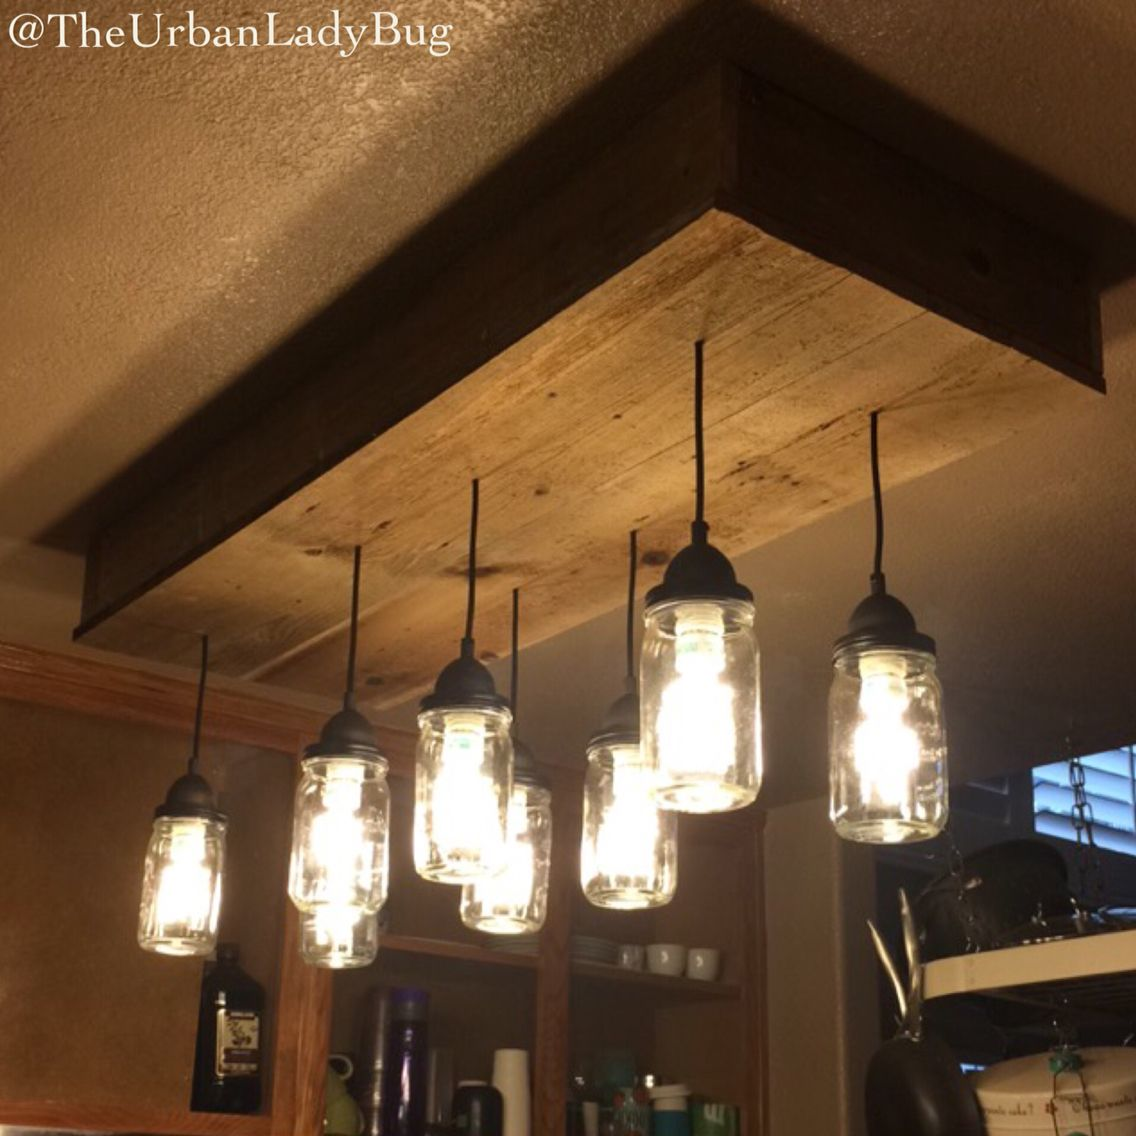 Diy Kitchen Light Fixtures Part 2: How To Make A Mason Jar Chandelier